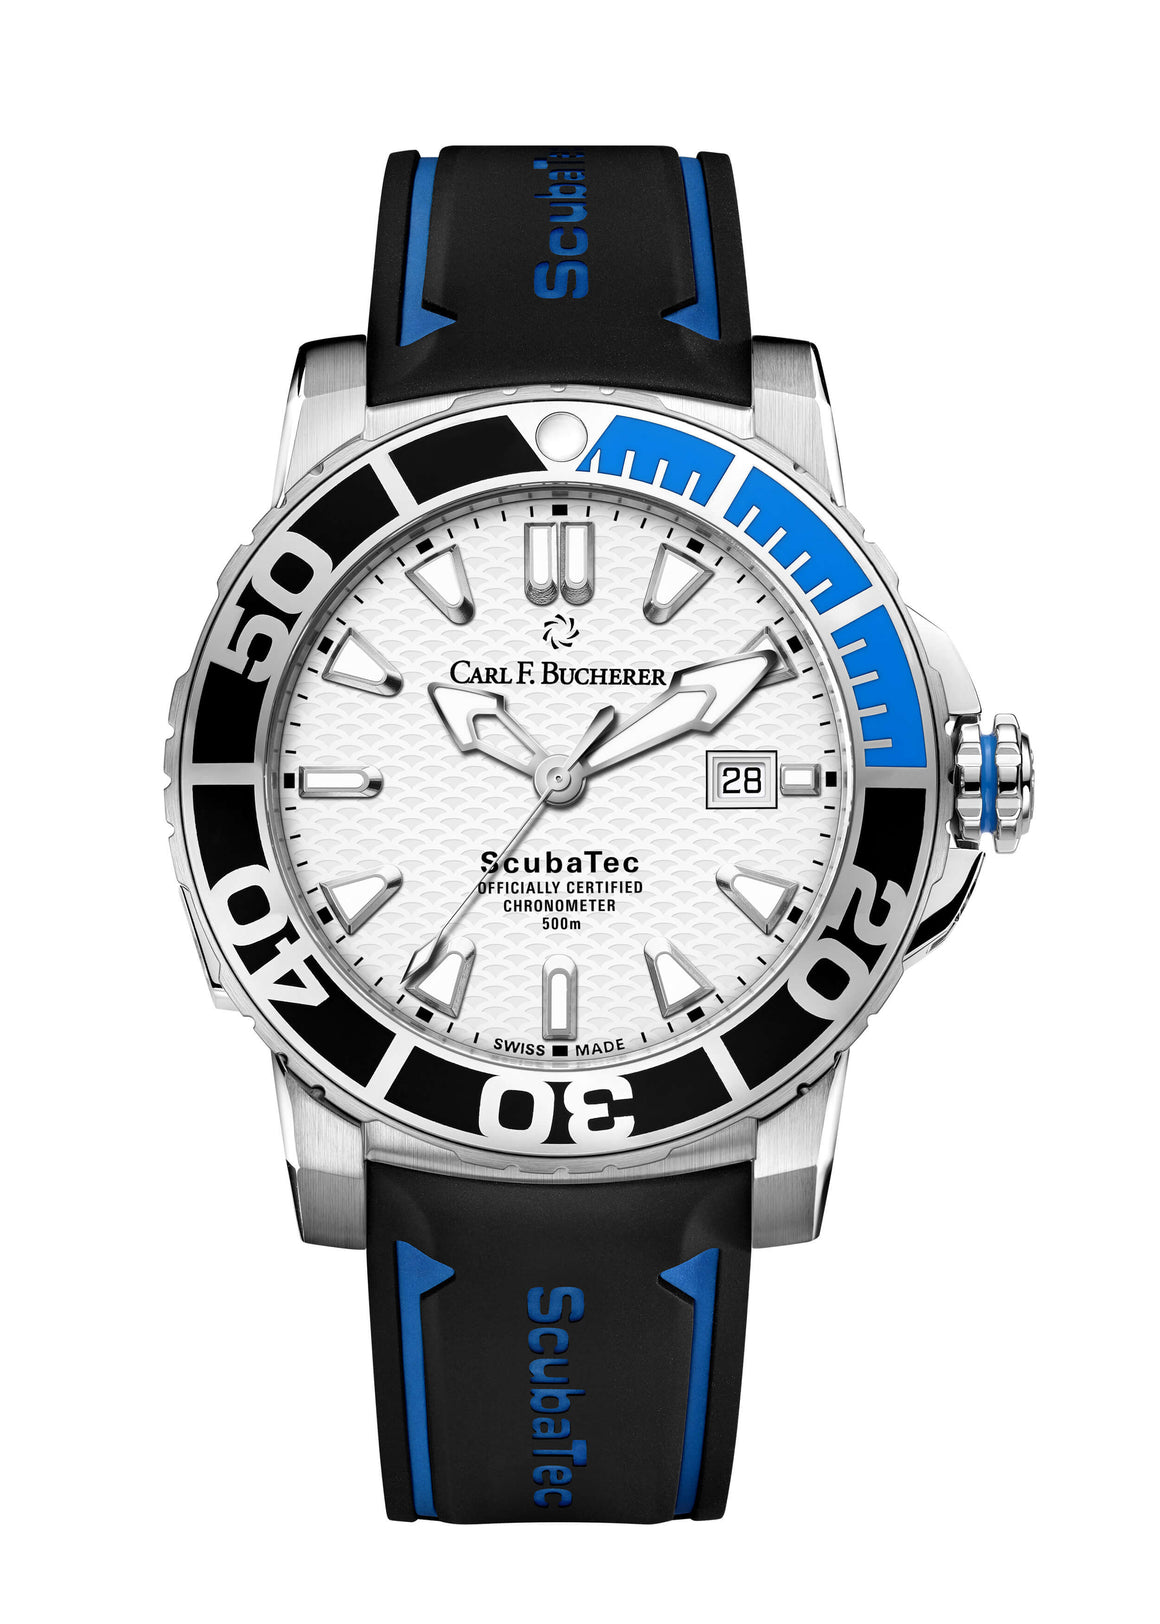 Carl F. Bucherer Patravi Scubatec Watch